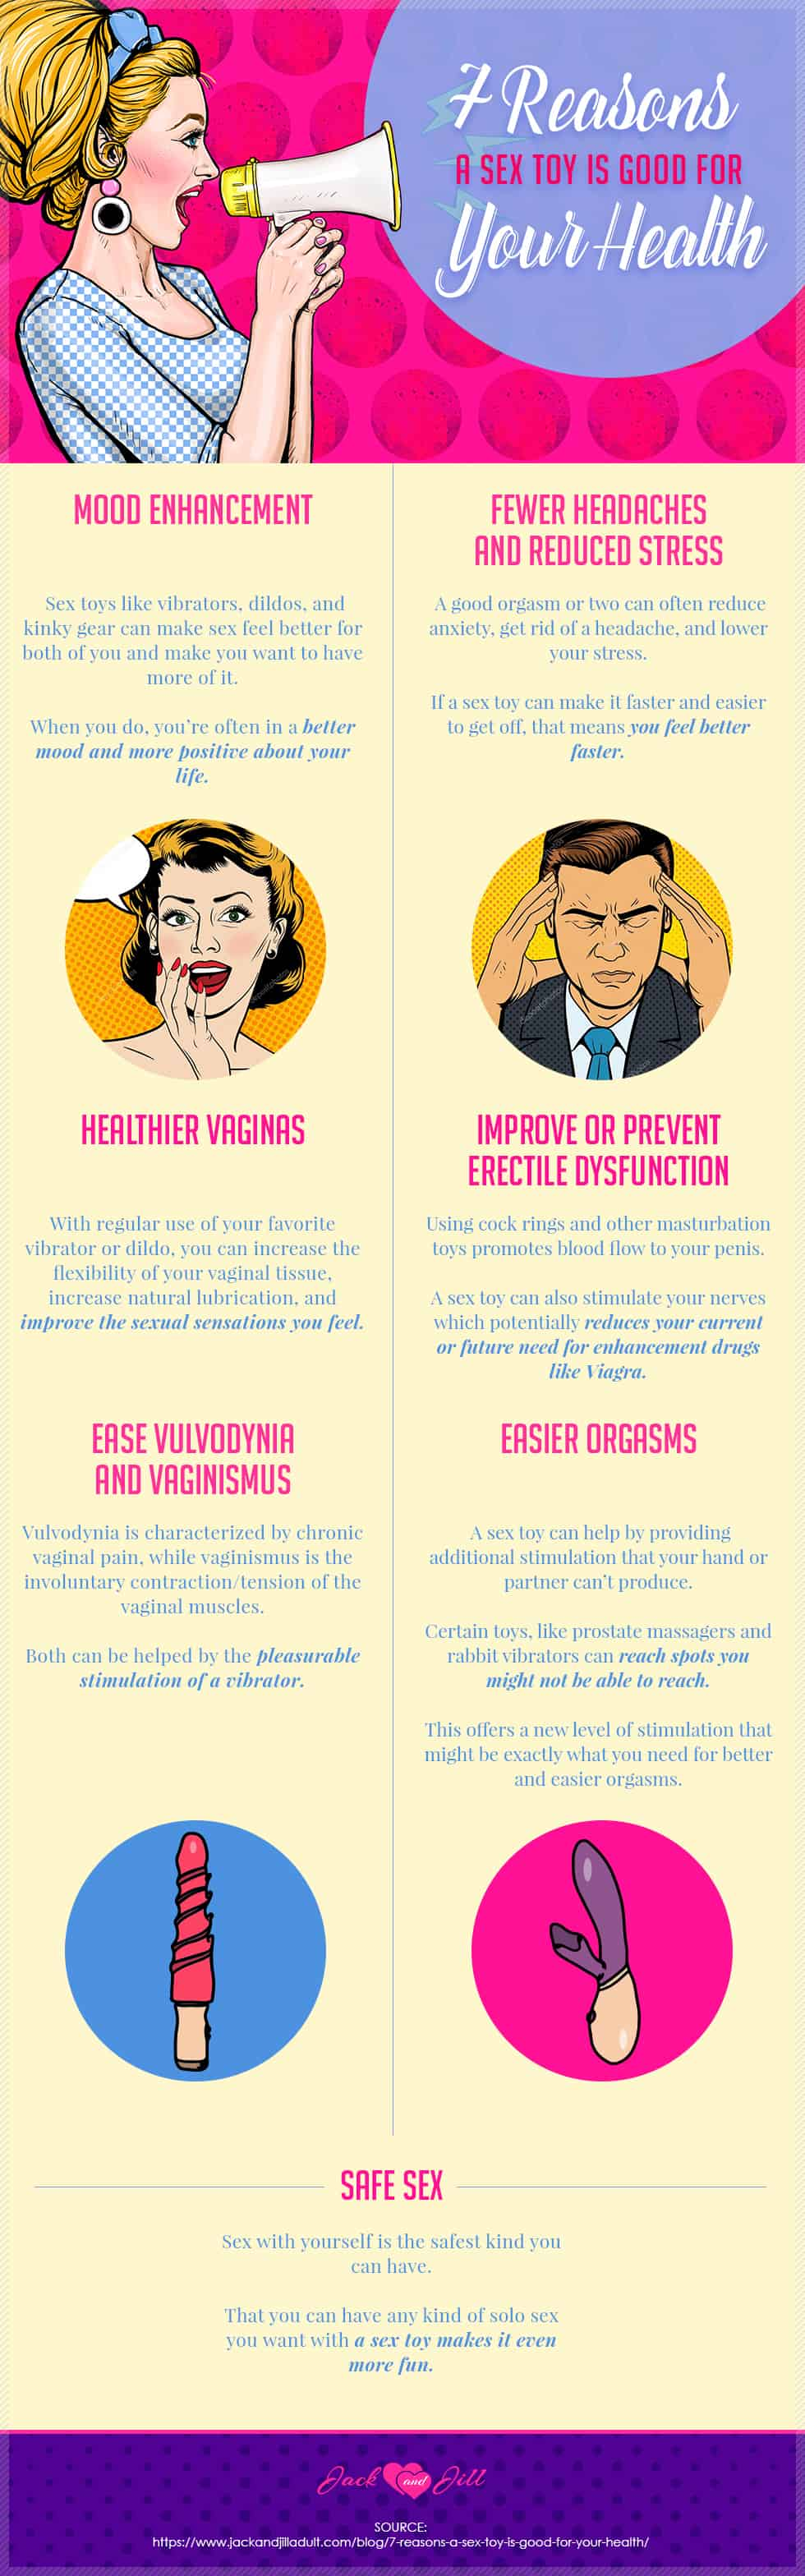 Infographic for 7 Reasons a Sex Toy is Good for Your Health